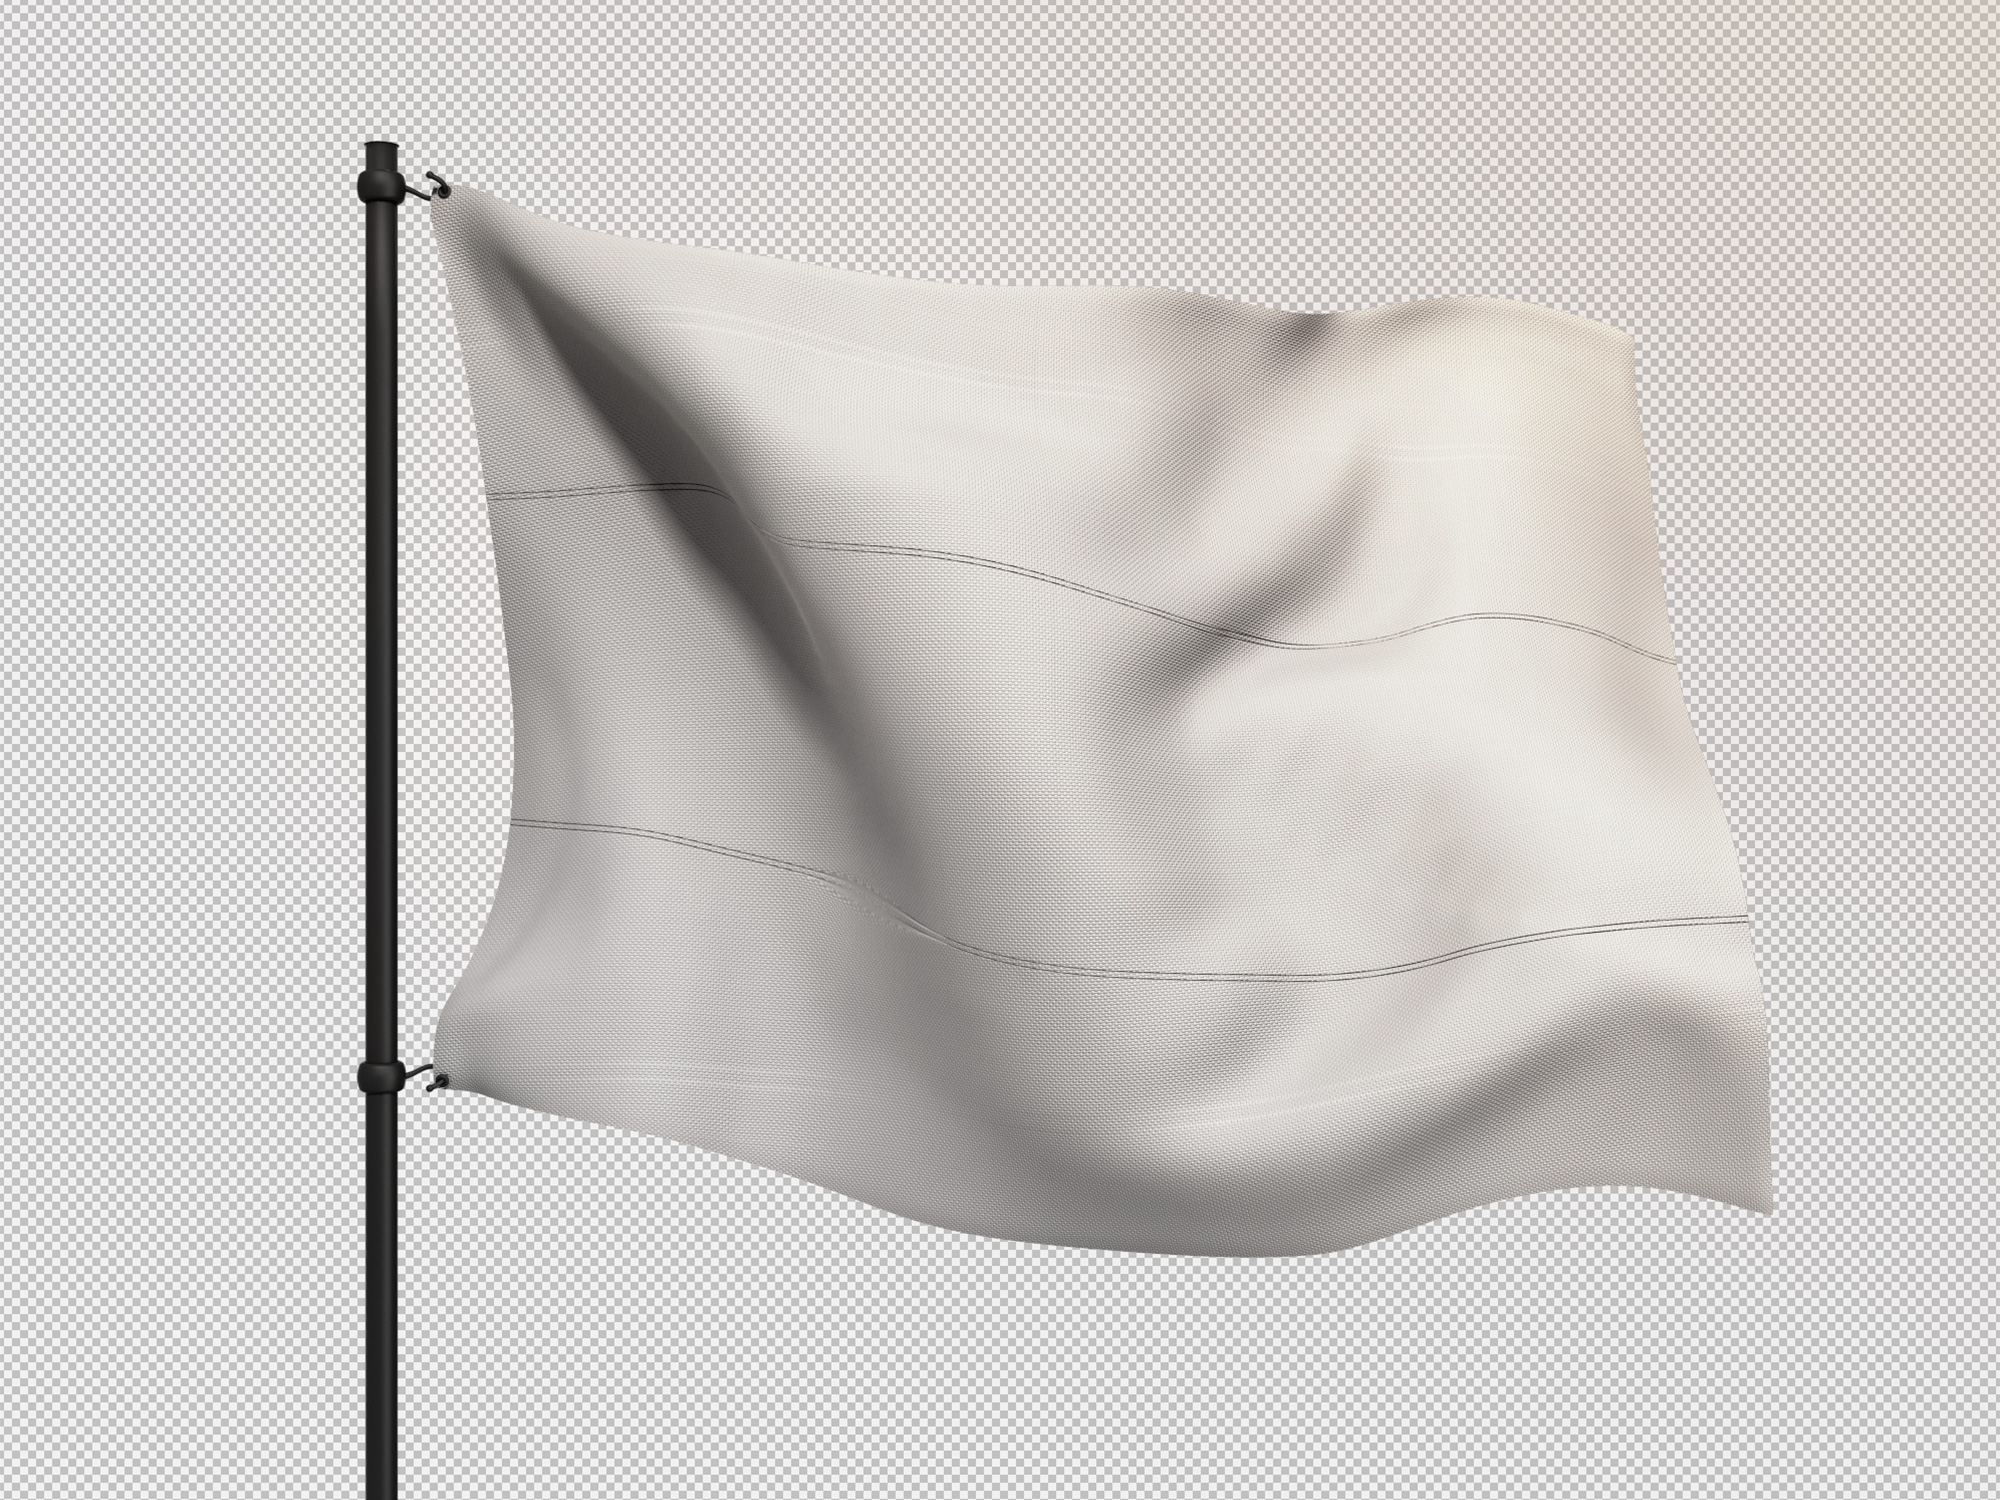 Flag Attached to Metal Pole Mockup 2